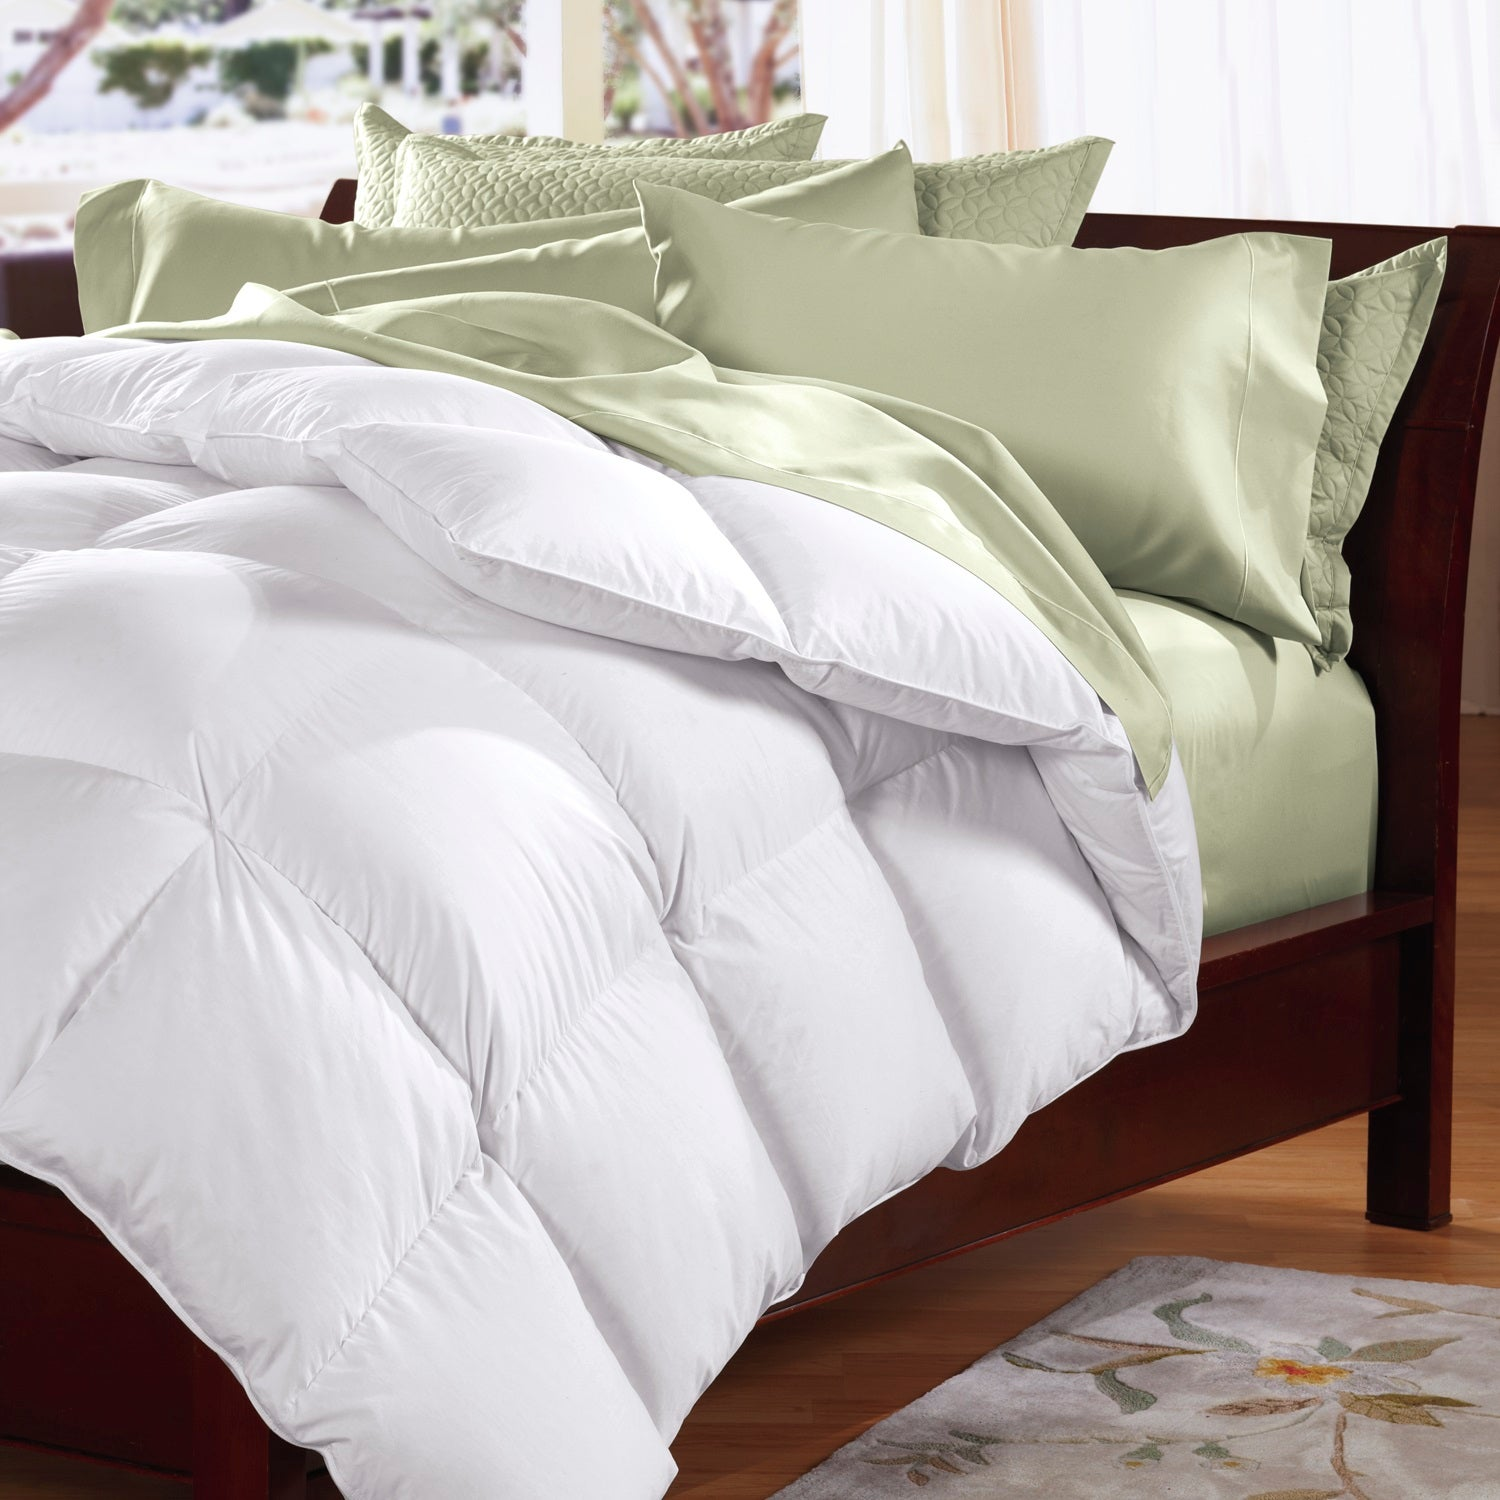 500GSM Soft Goose Feather Down Quilt Duvet Doona 95% Feather 5% Down All-Seasons